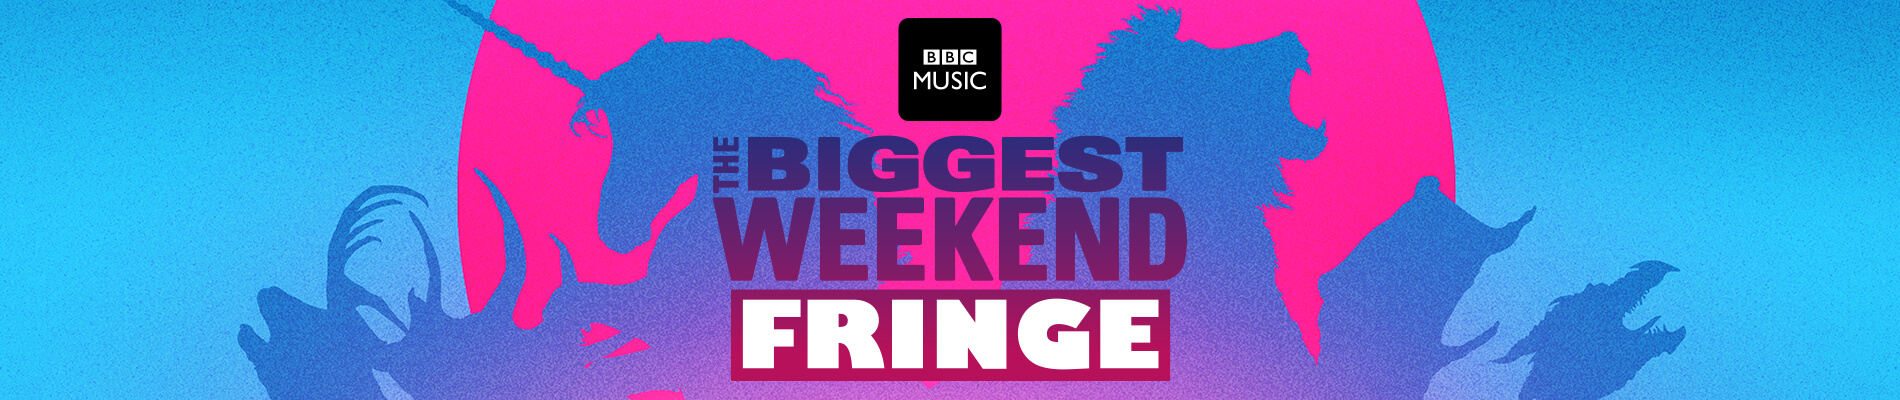 /bbc the biggest weekend uk fringe